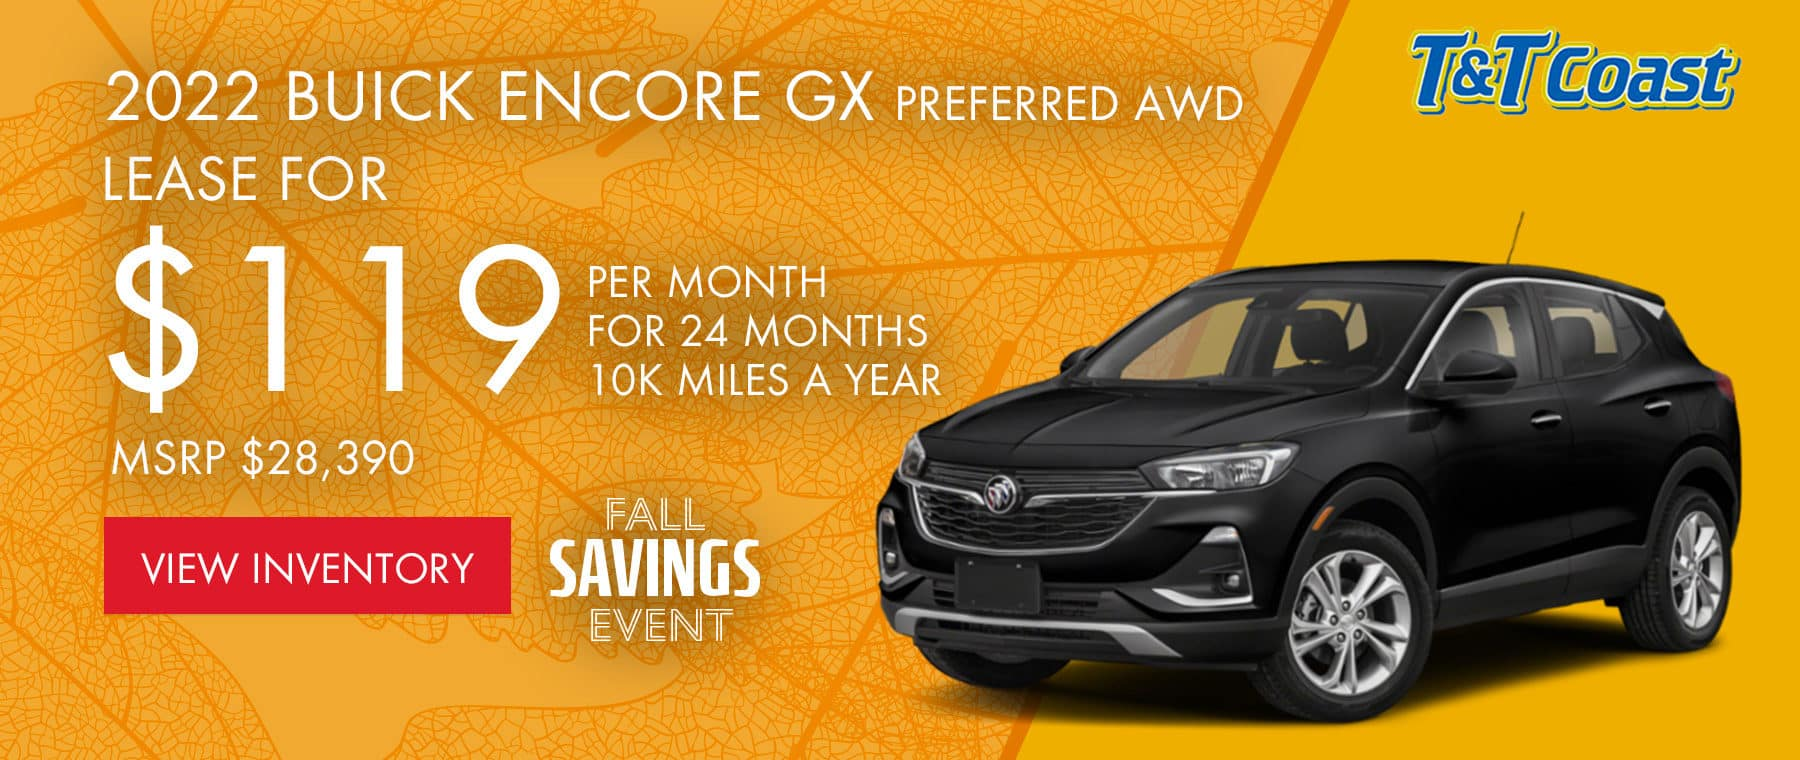 2022 BUICK ENCORE GX PREFERRED AWD MSRP $28,390 $119/MONTH LEASE! For 24 Months /10K Miles/Year